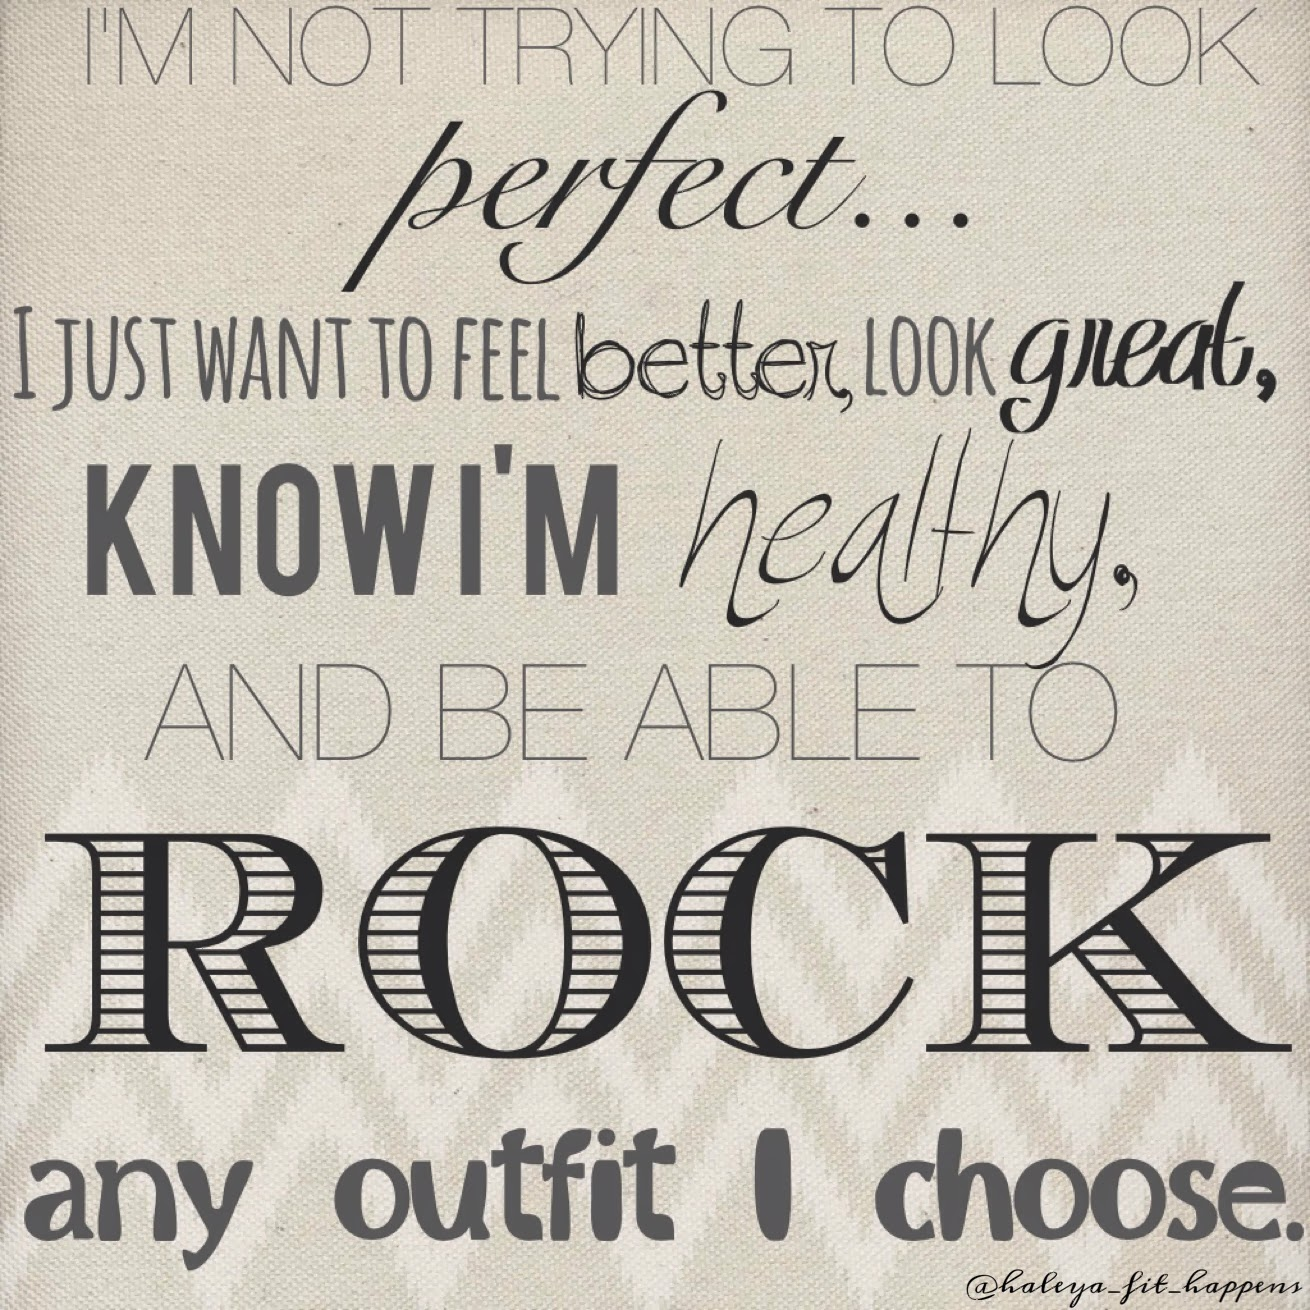 ROCK that outfit!